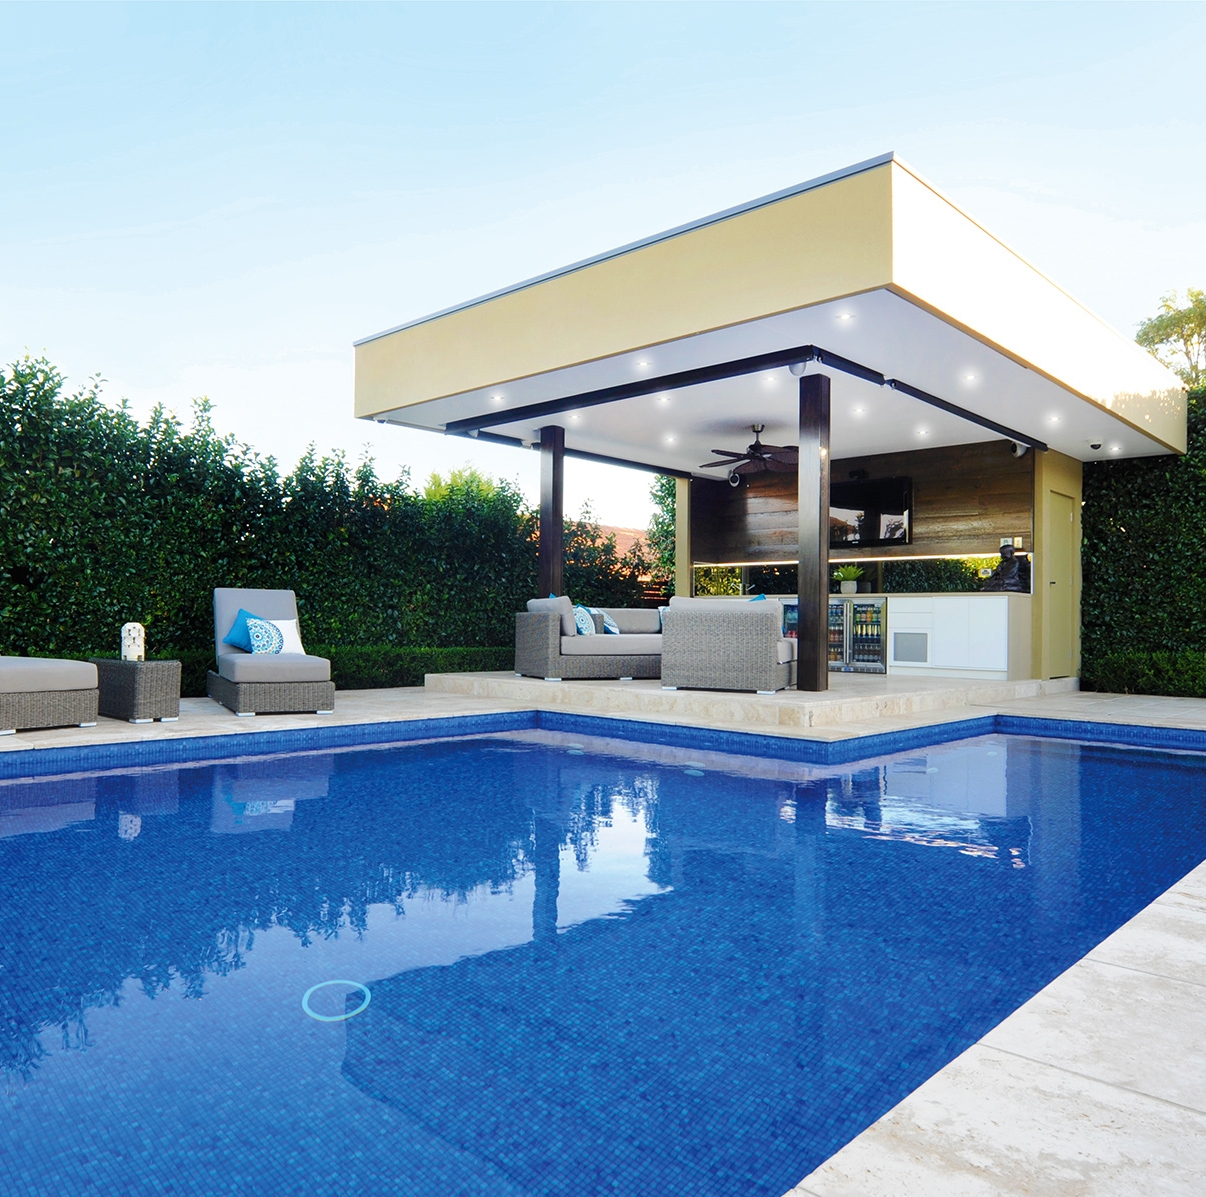 bisazza sydney pool slider image 6